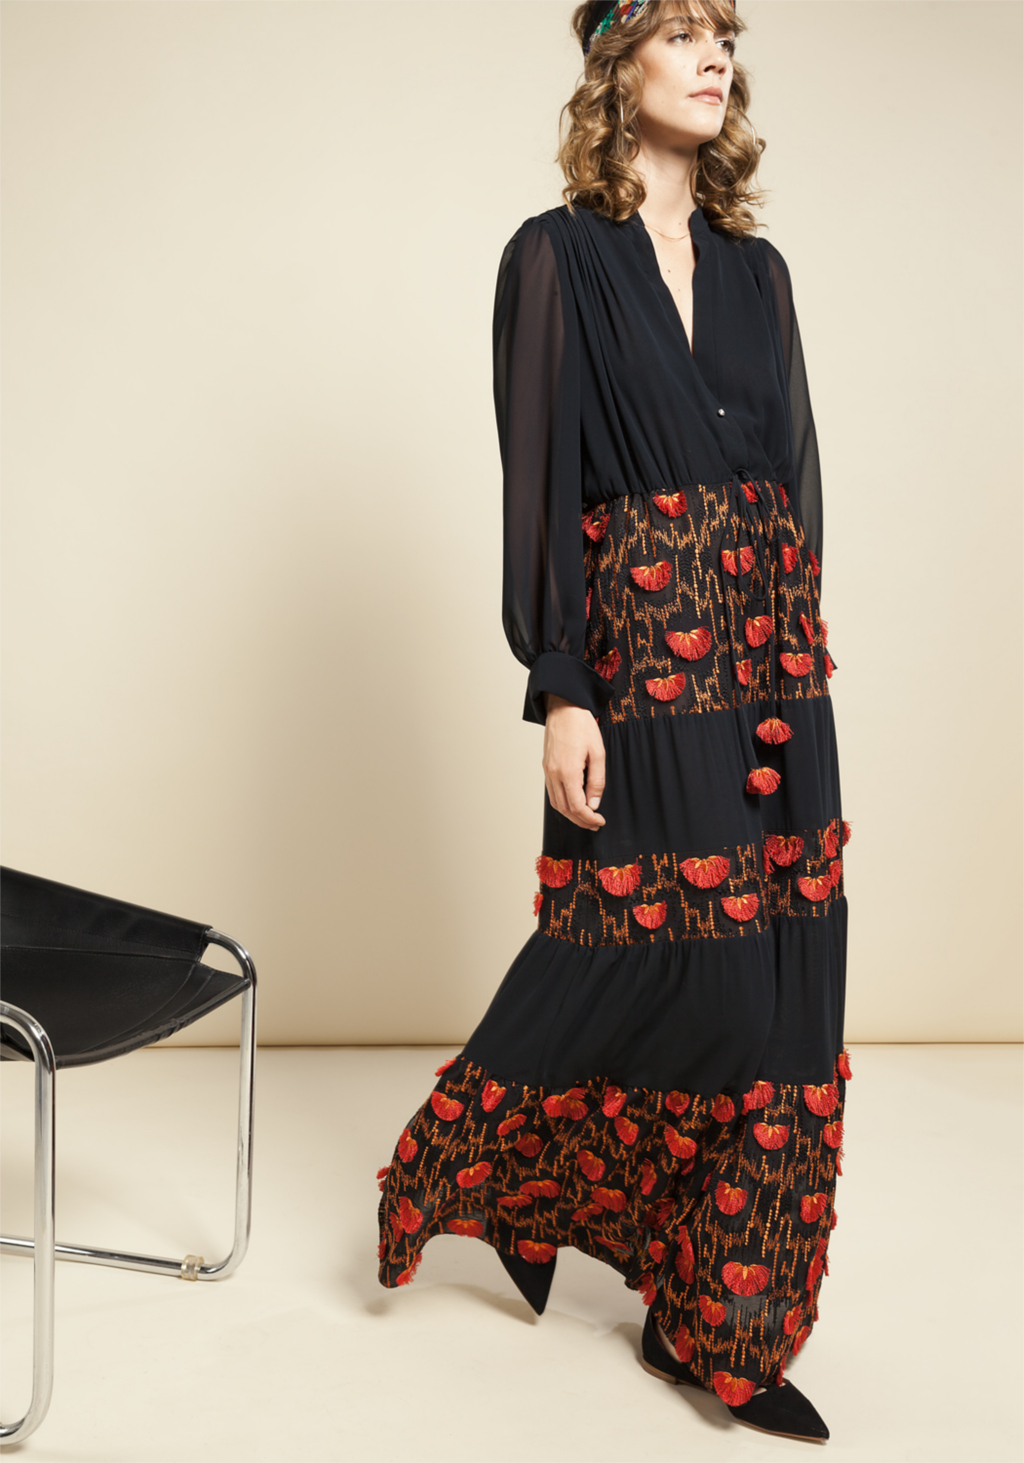 Black chiffon long dress with orange & red ethnic floreal embroidery